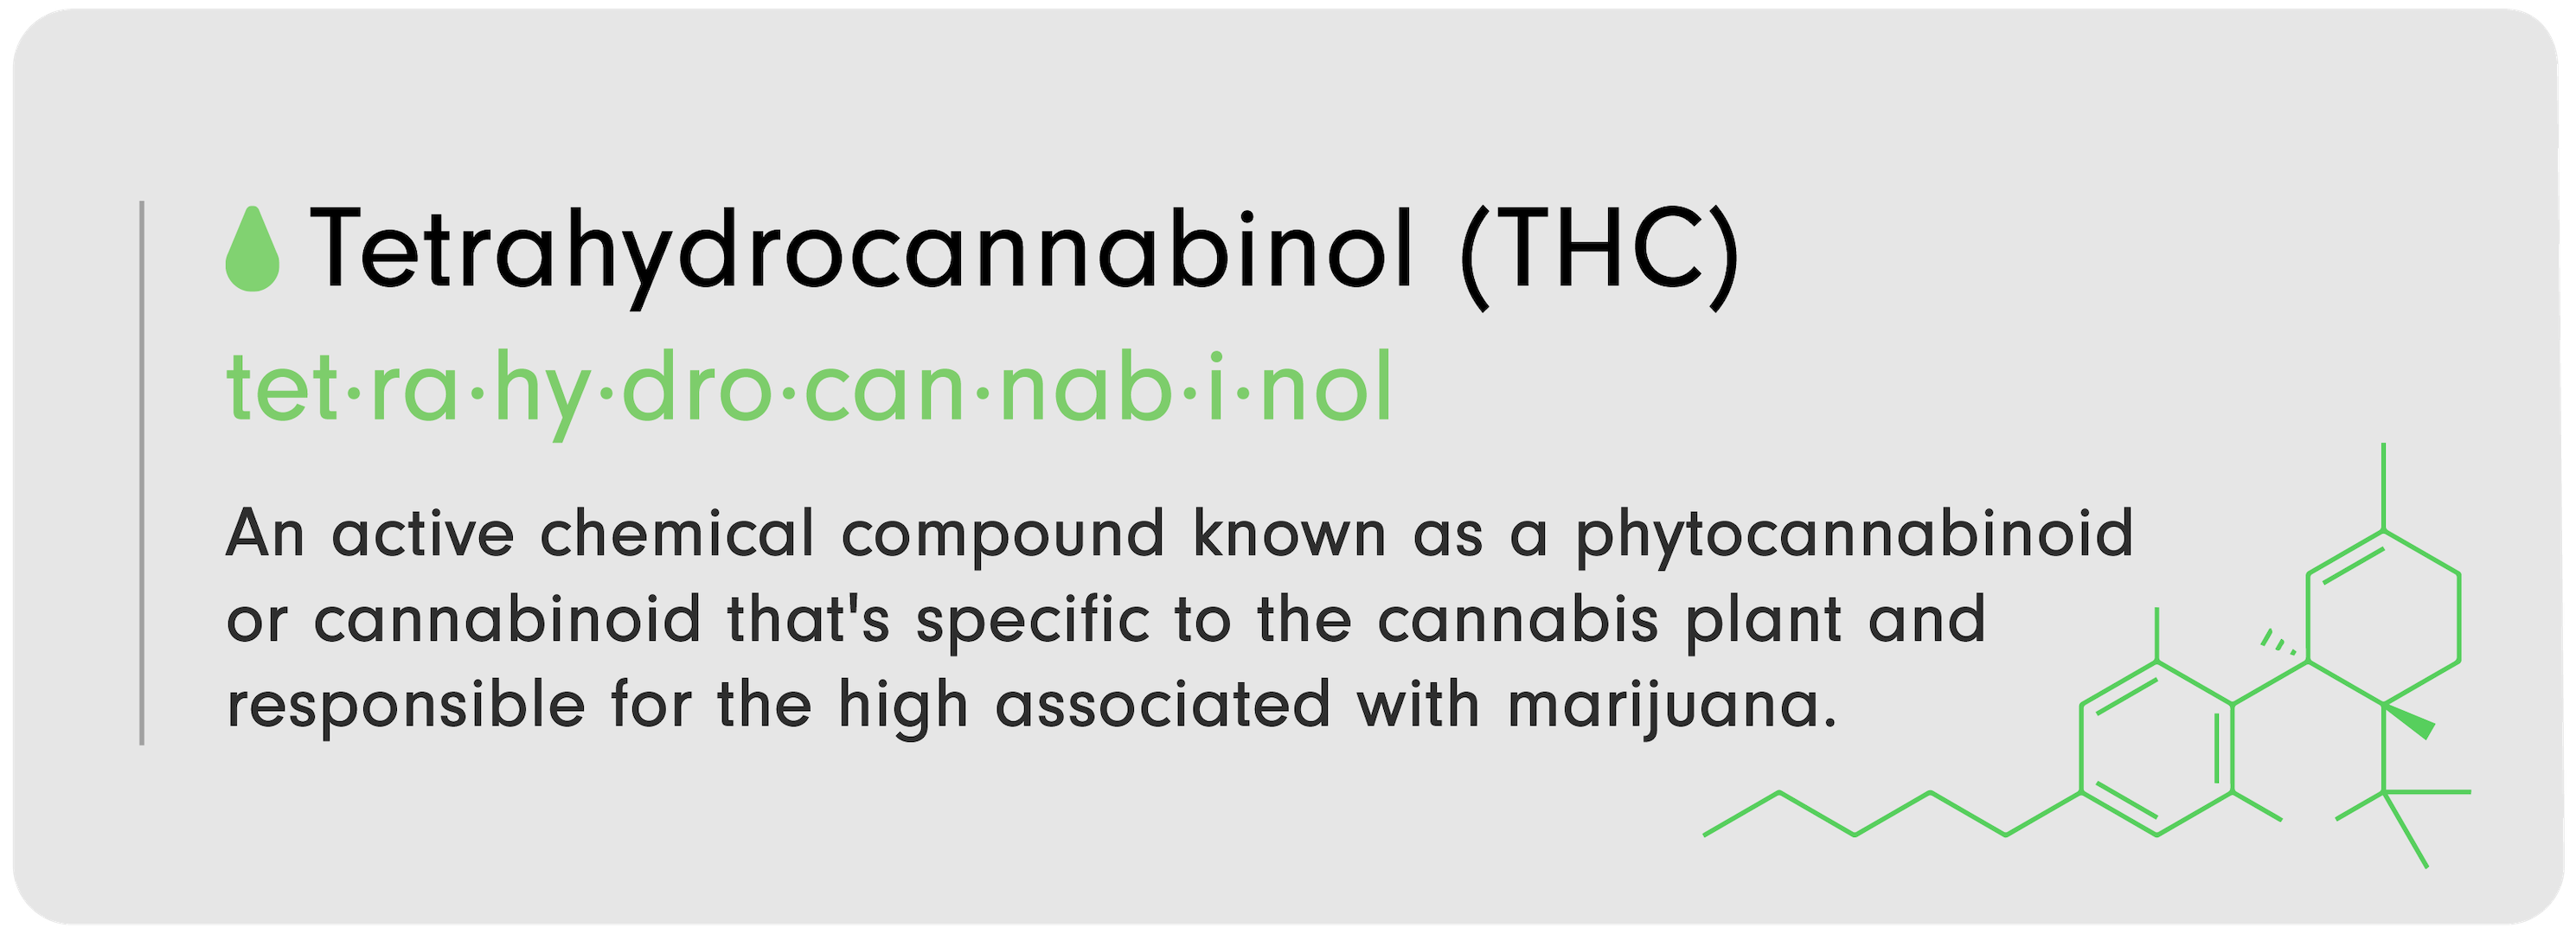 """C-D 101 infographic from LEVO that reads, """"Tetrahydrocannabinoil (T-C): An active chemical compound known as a phytocannabinoid or cannabinoid that's specific to the c----bis plant and responsible for the high associated with m----ana."""""""